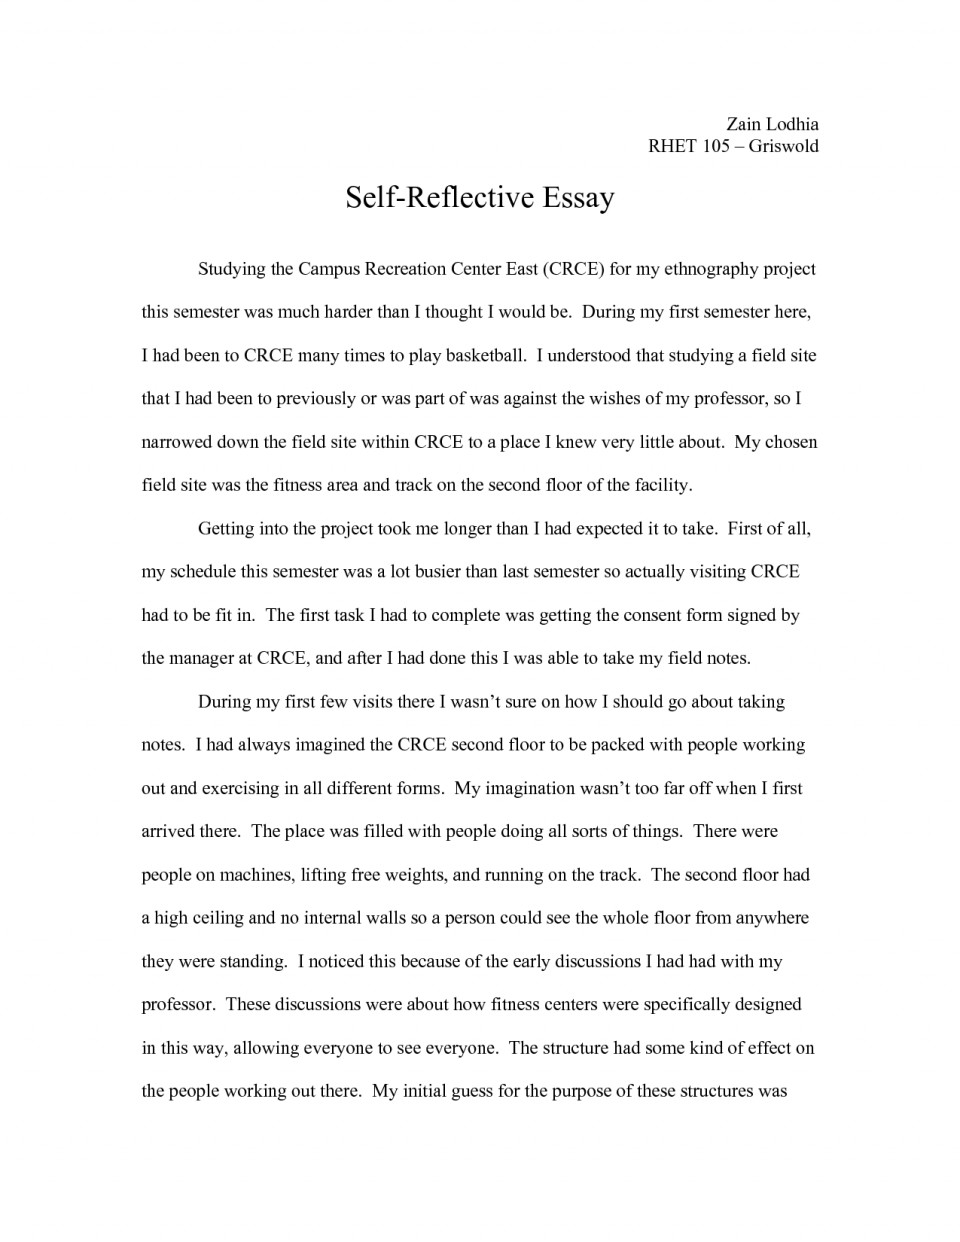 003 Reflective Essay Format Qal0pwnf46 Phenomenal Example Reflection Paper Apa 960